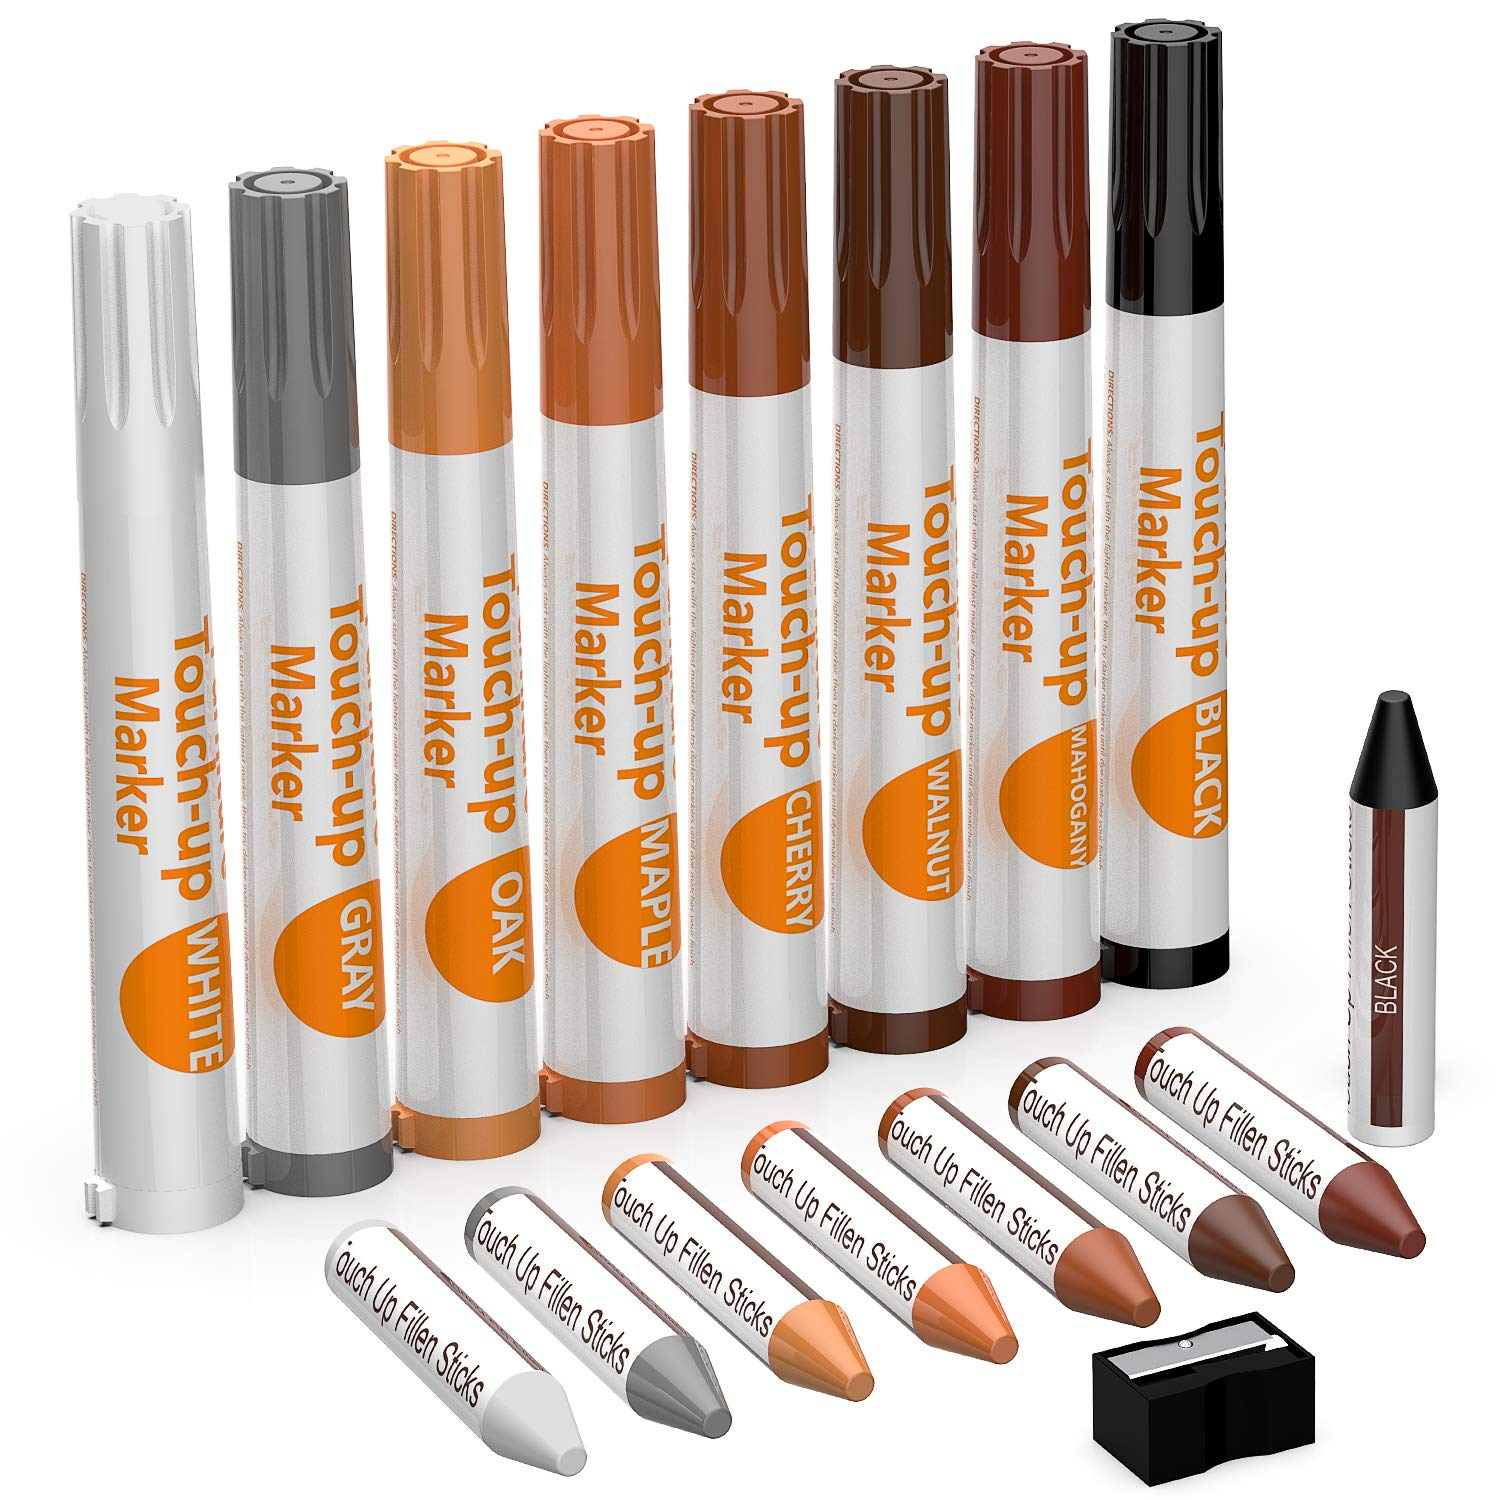 NADAMOO Furniture Touch Up Marker 17 Pcs Repair Kit Cover Wood Scratch - 8 Felt Tip Markers & 8 Filler Crayon Sticker & 1 Sharpener, 8 Color - White, Black, Gray, Mahogany, Walnut, Cherry, Maple, Oak